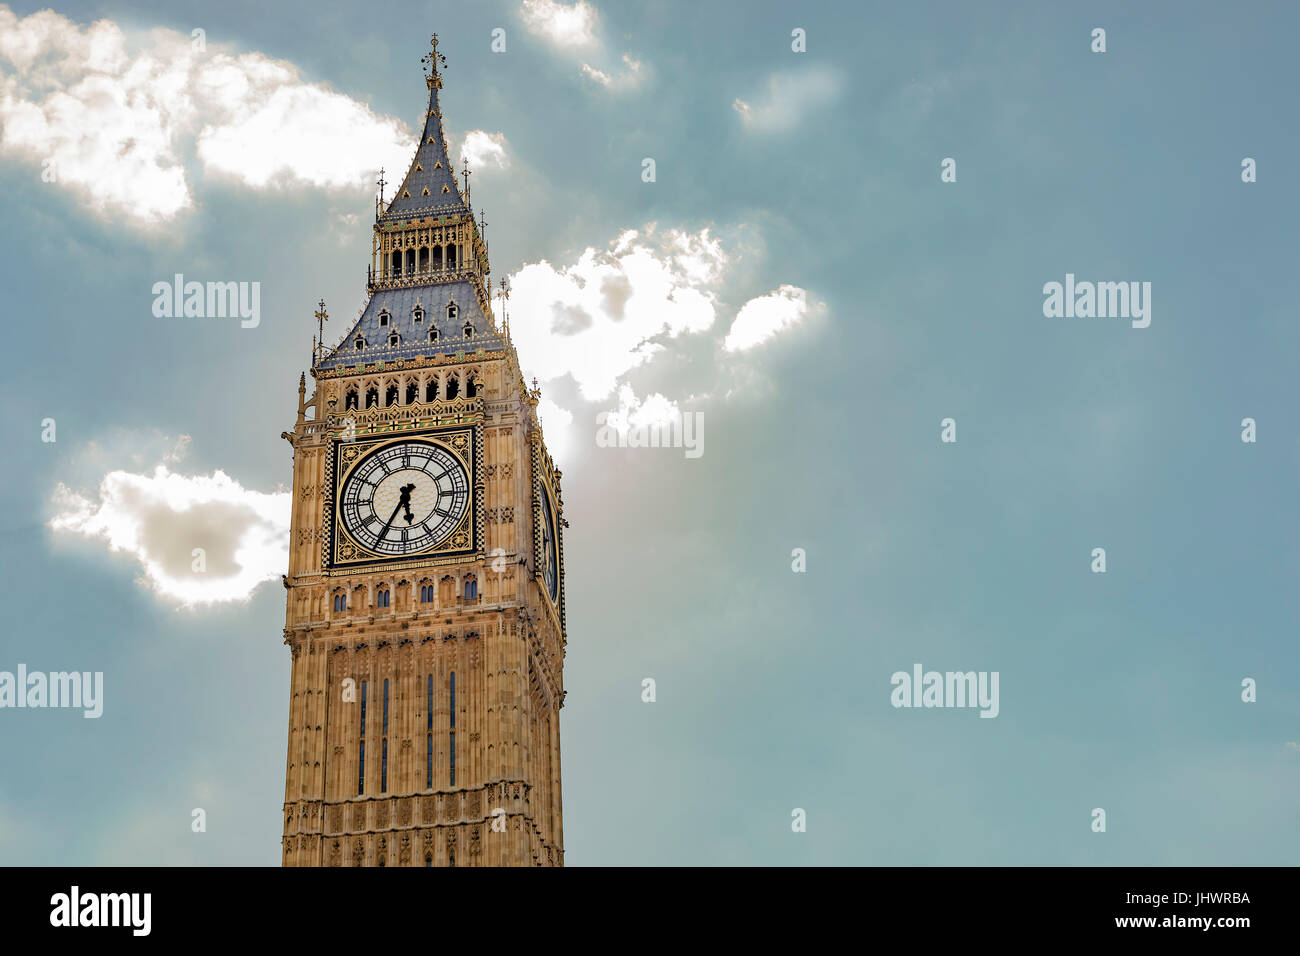 Elizabeth Tower with the clock and the bells of Big Ben in front of a bright blue sky with luminous clouds. - Stock Image